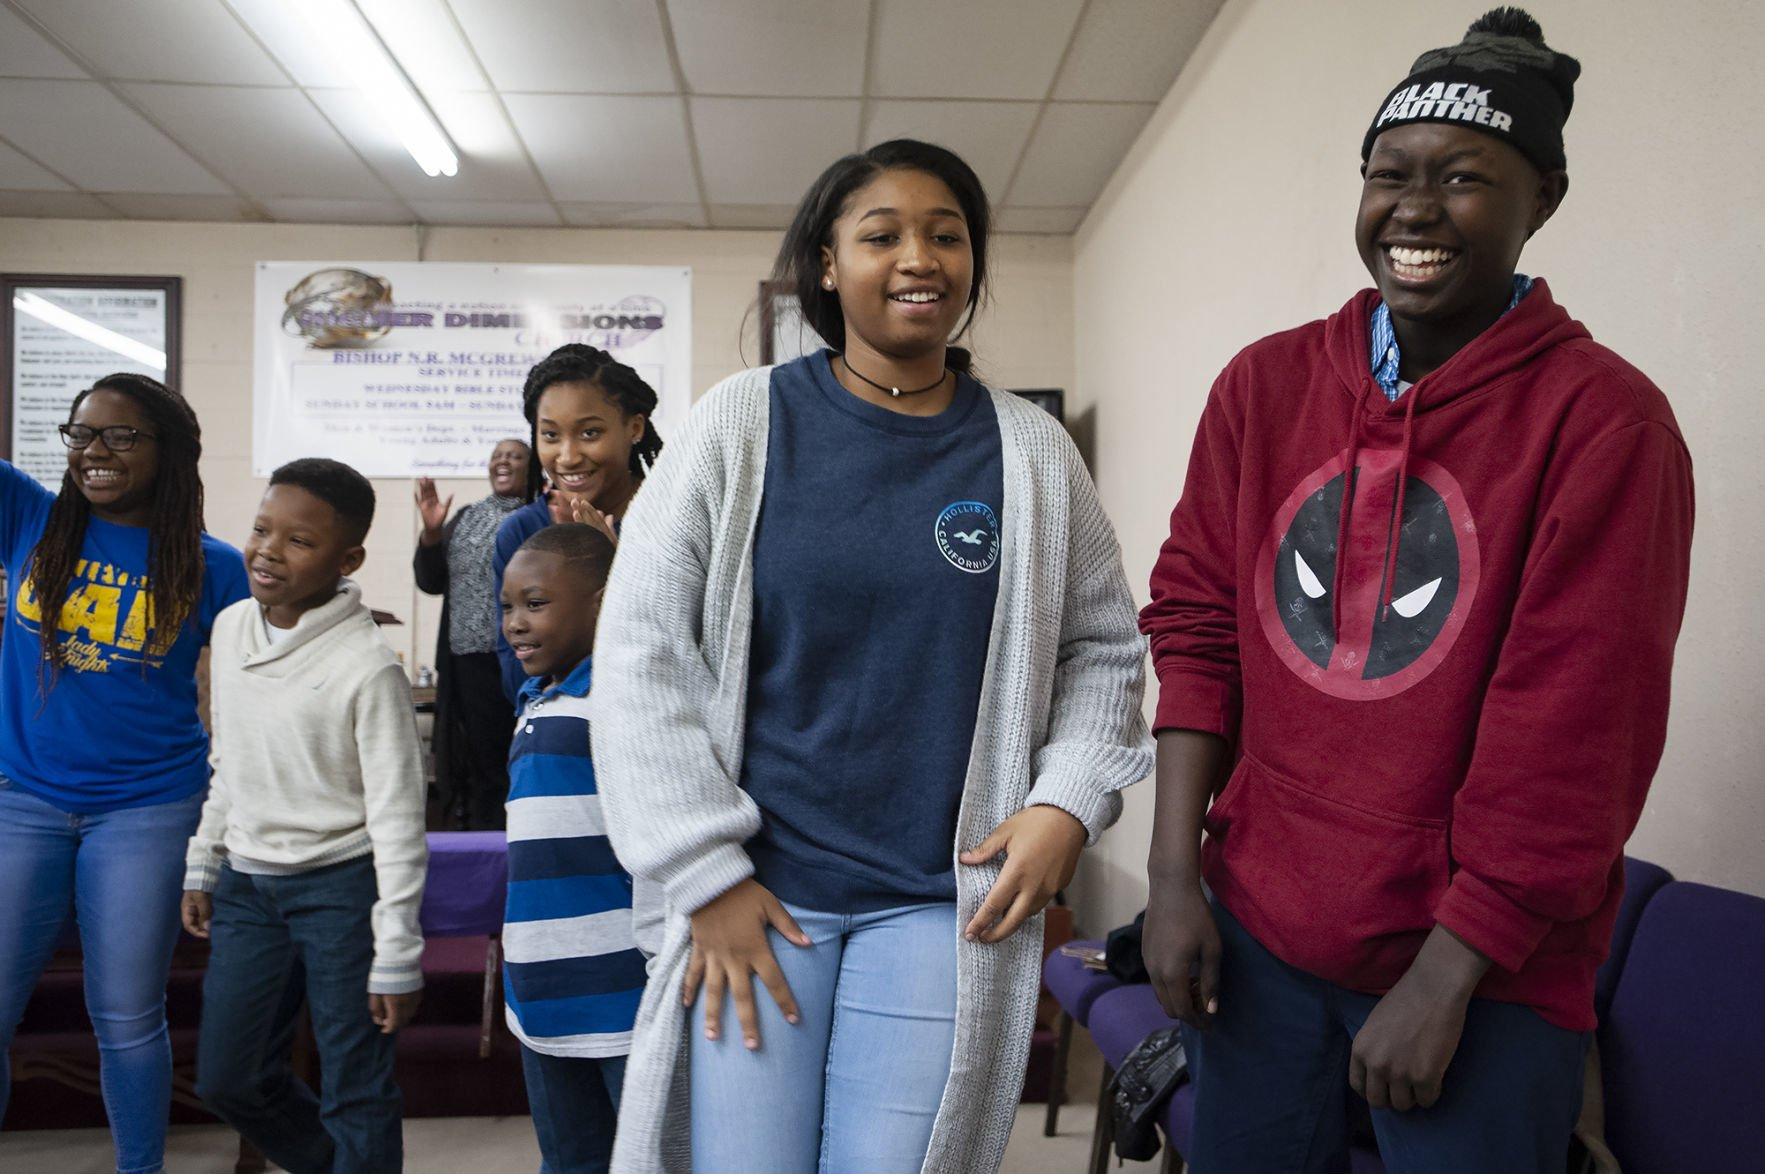 Tyler teen's fight with cancer inspires church, community